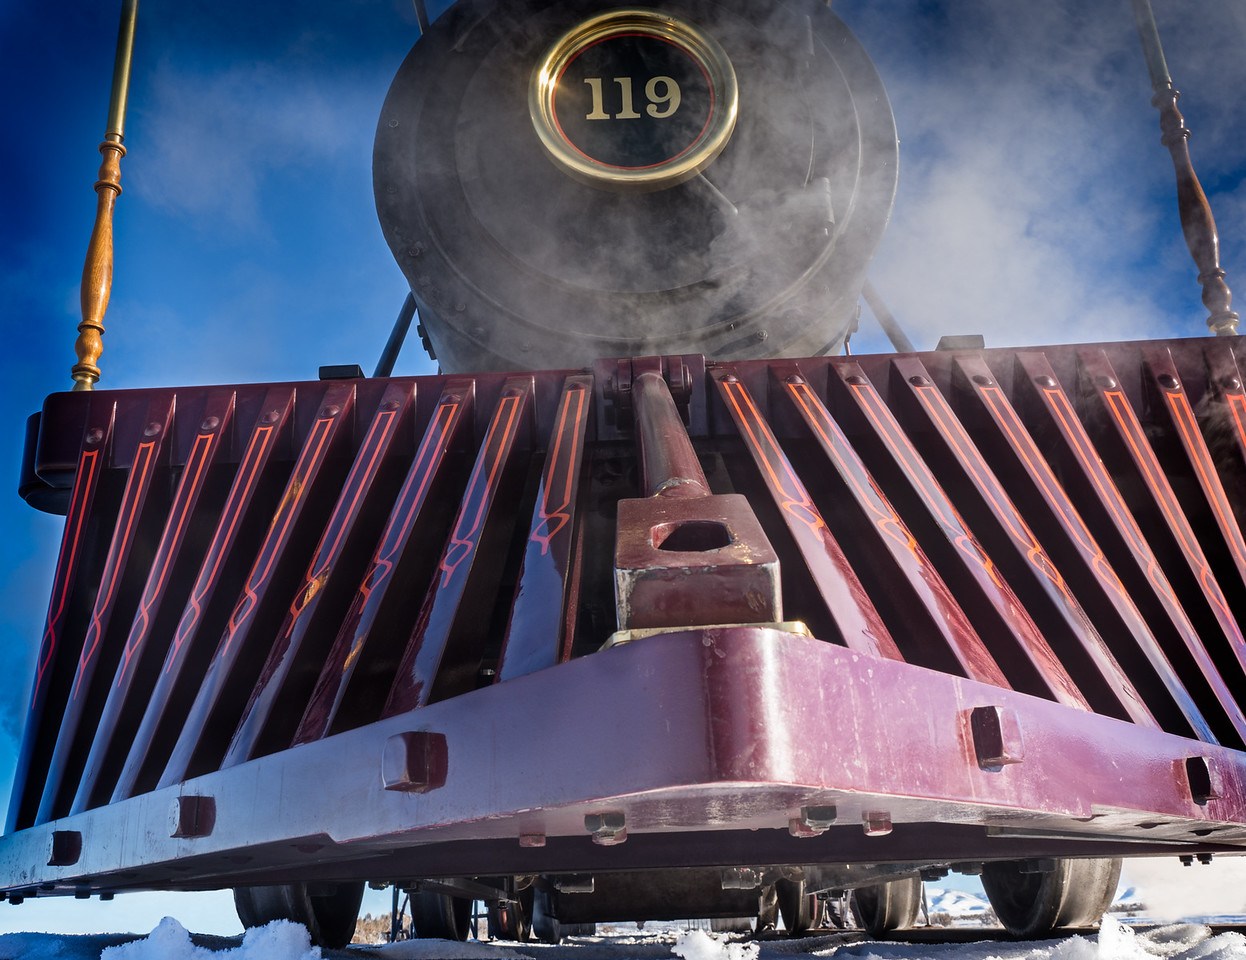 3-Intermediate-Assigned_-_From_the_Ground-DNP-Hiroshi_Kamaya-One_view_of_steam_engine